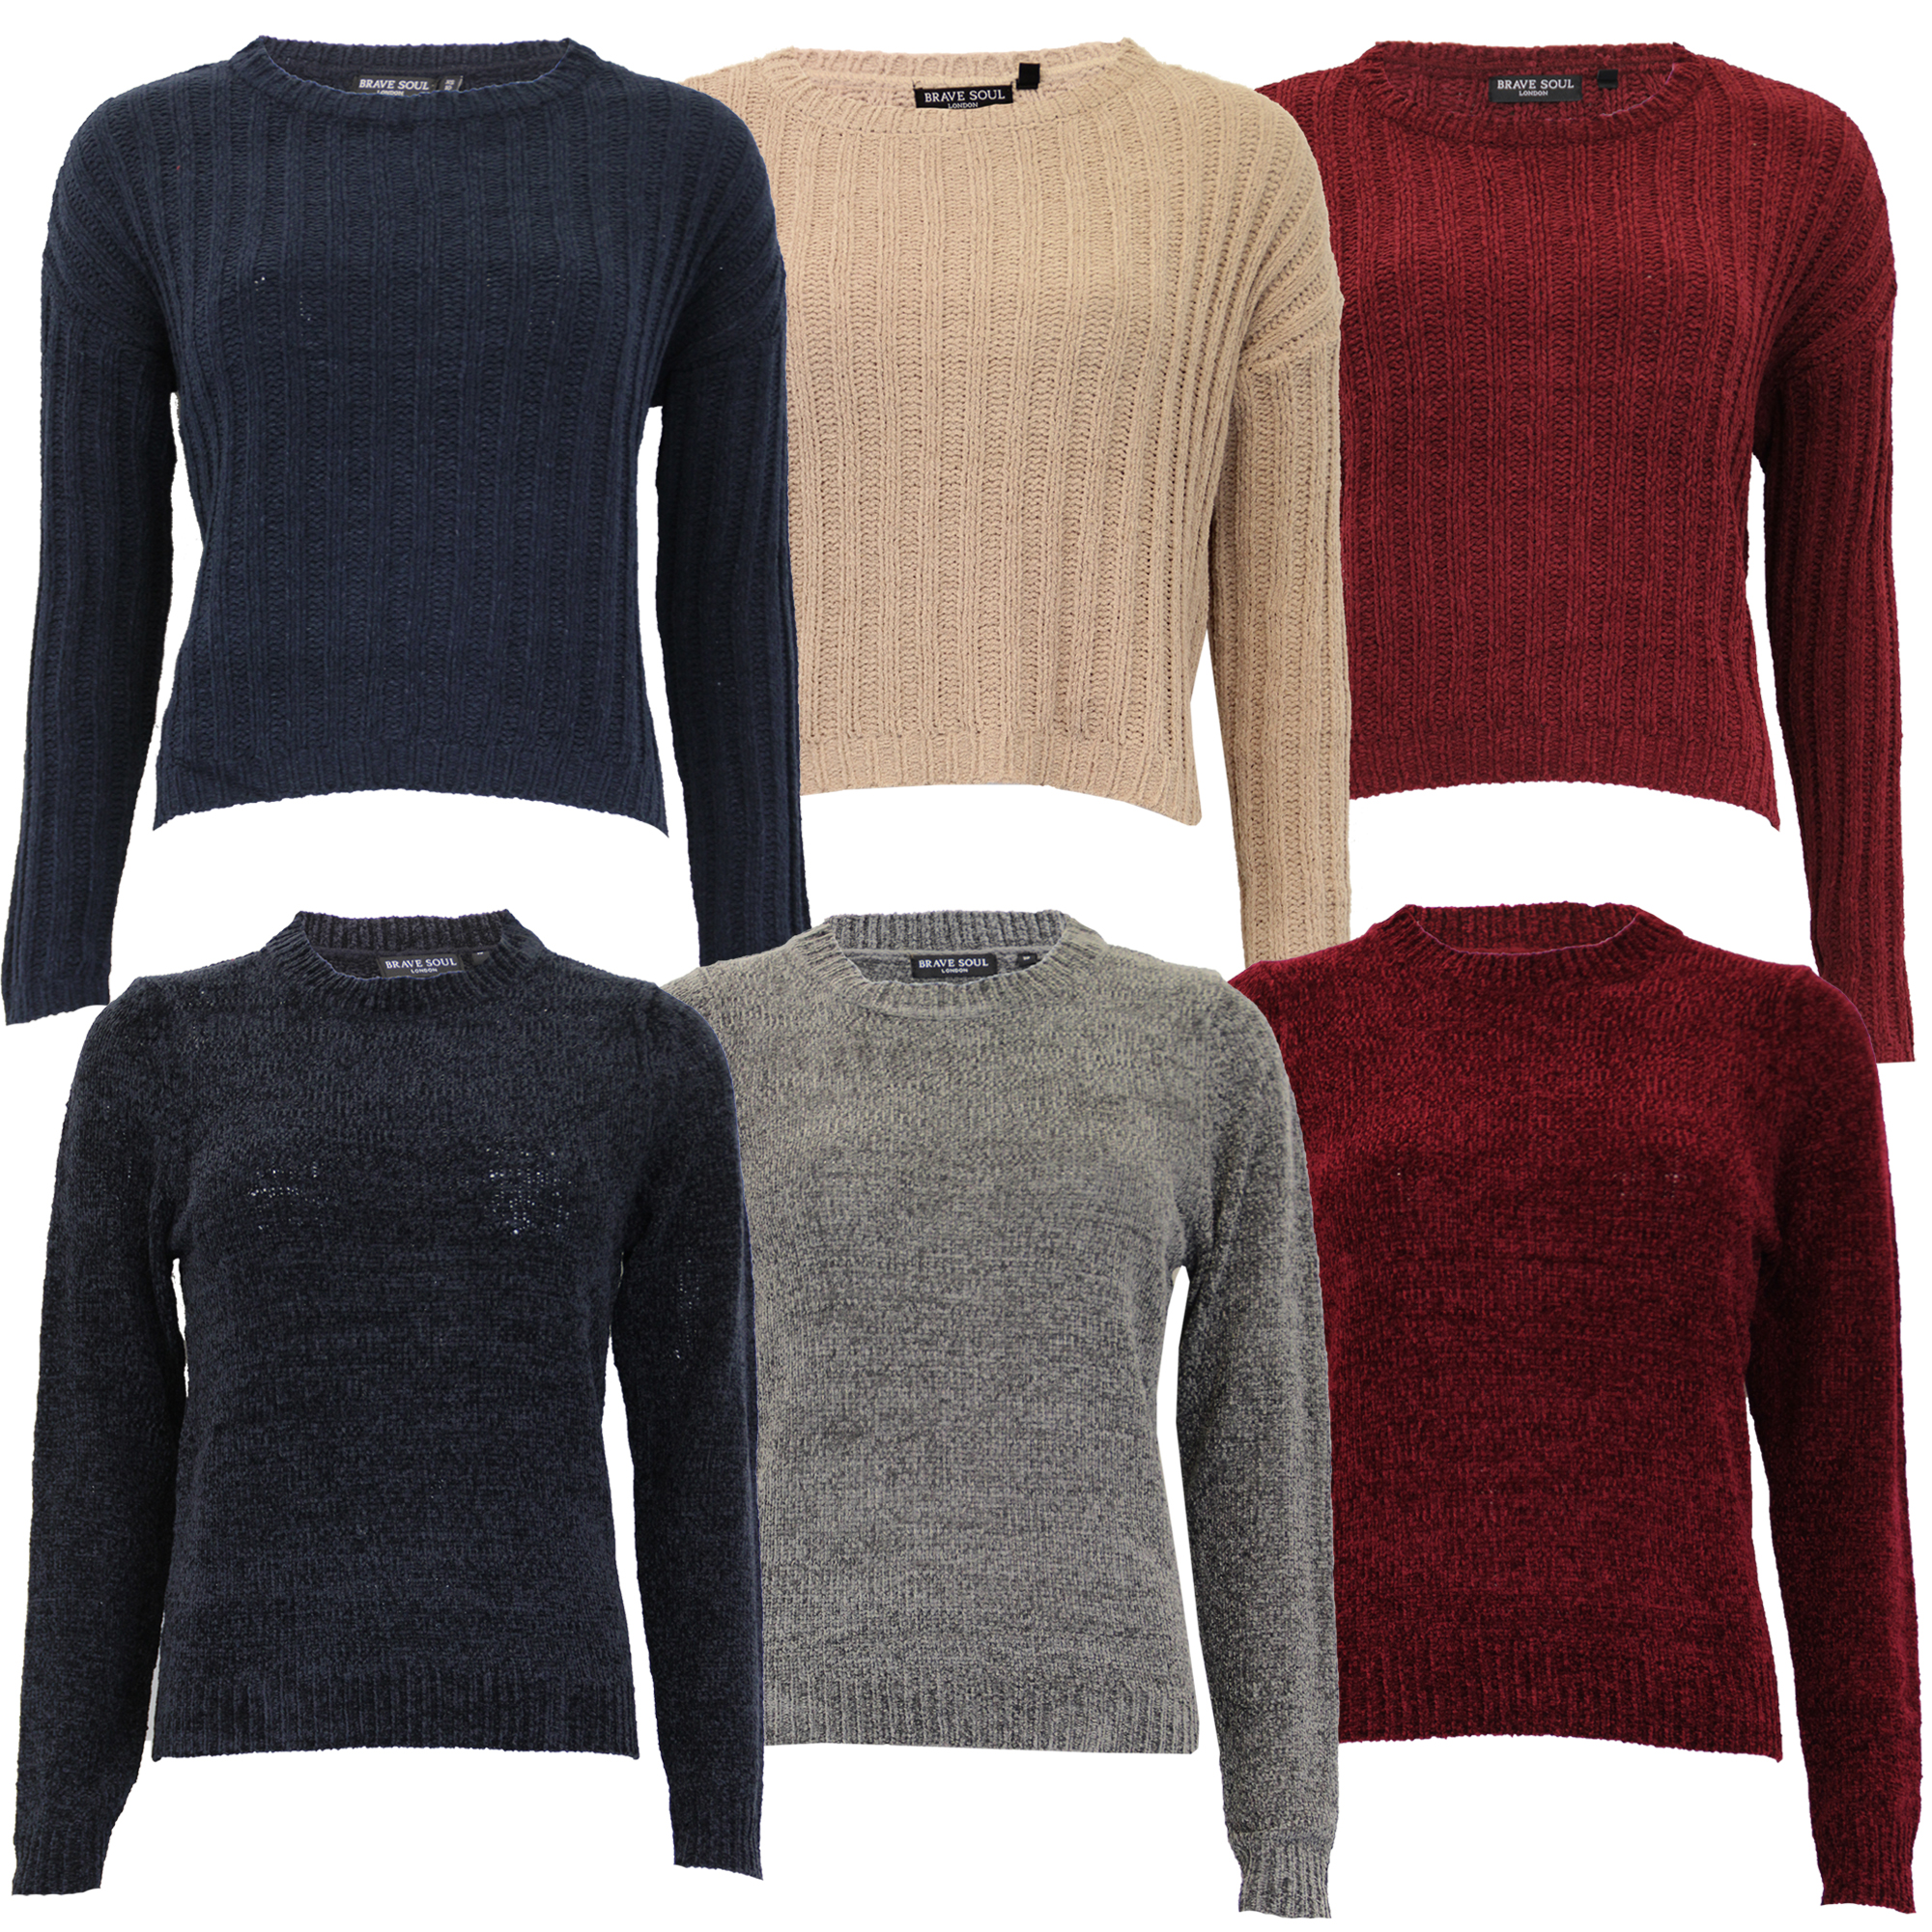 Details about Ladies Chenille Jumpers Brave Soul Womens Knitted Sweater Pullover Top Winter